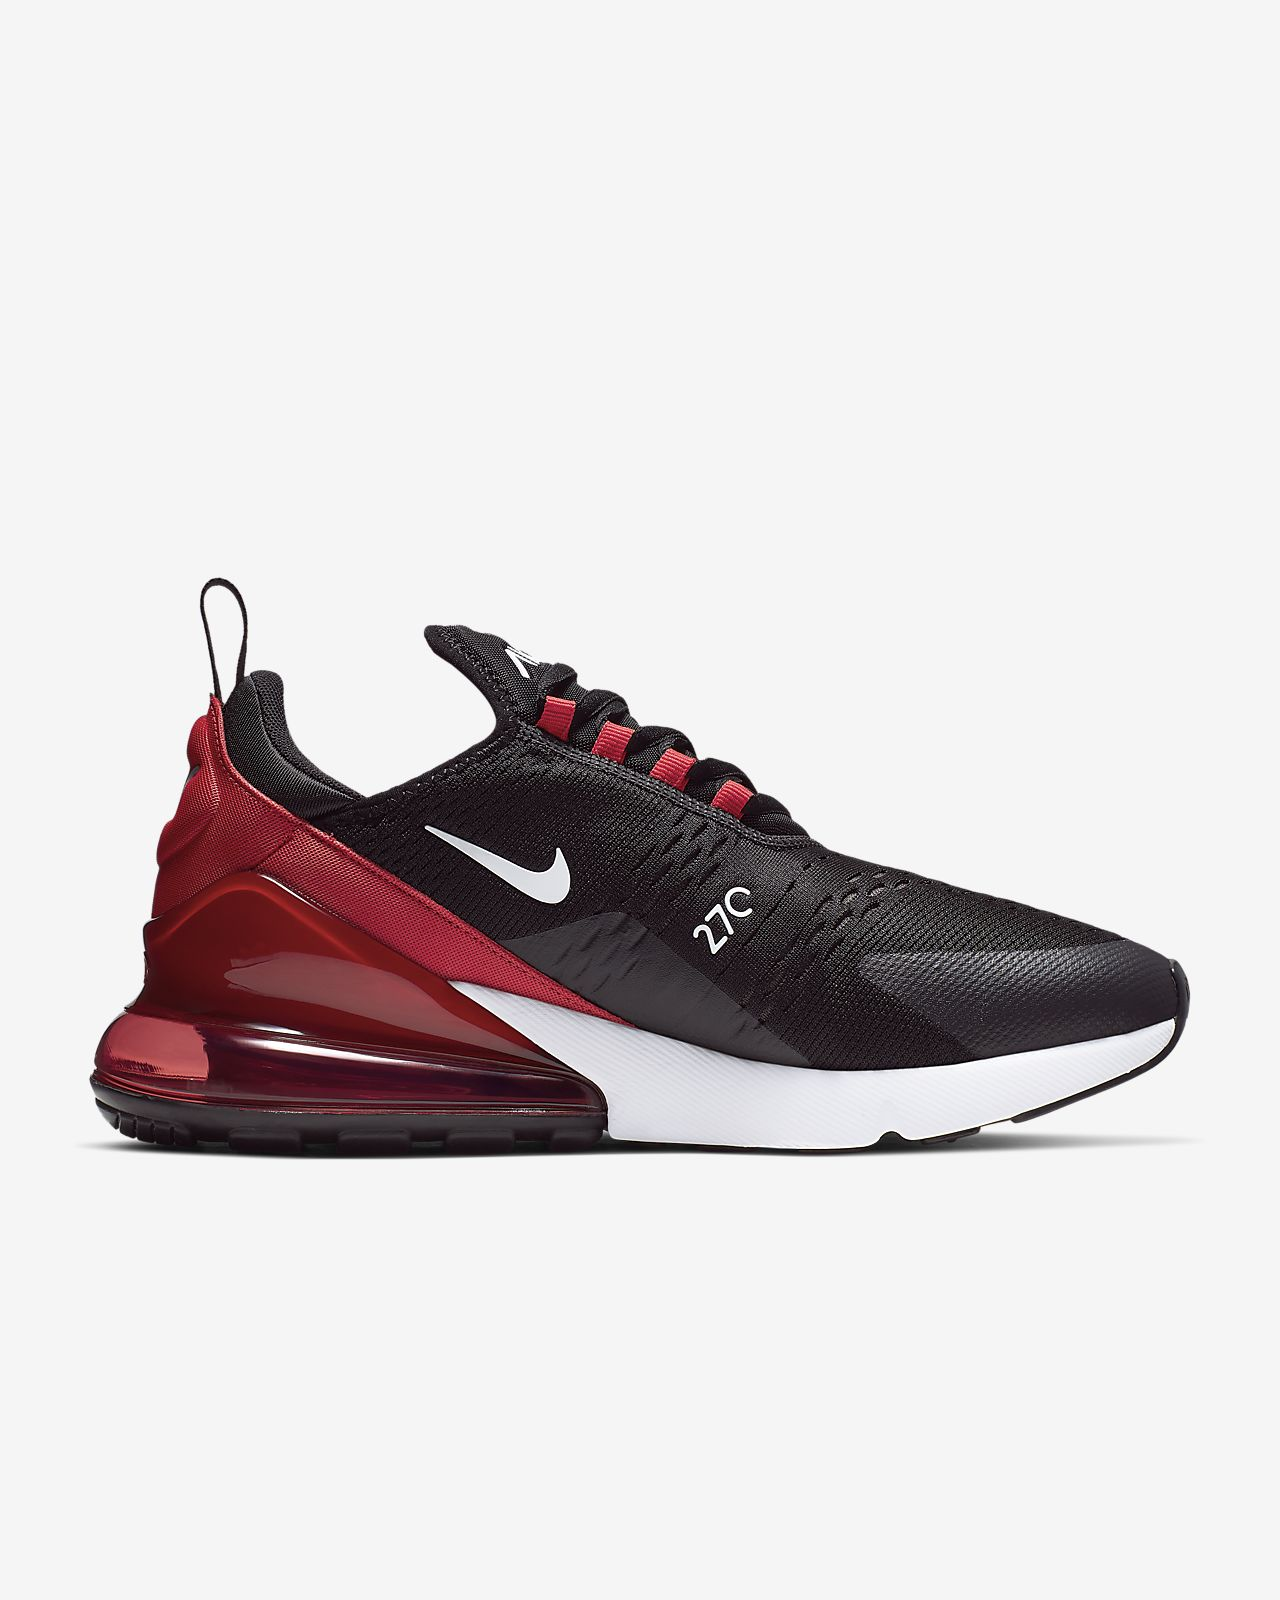 d8d4bea934e73 Nike Air Max 270 Men s Shoe. Nike.com GB